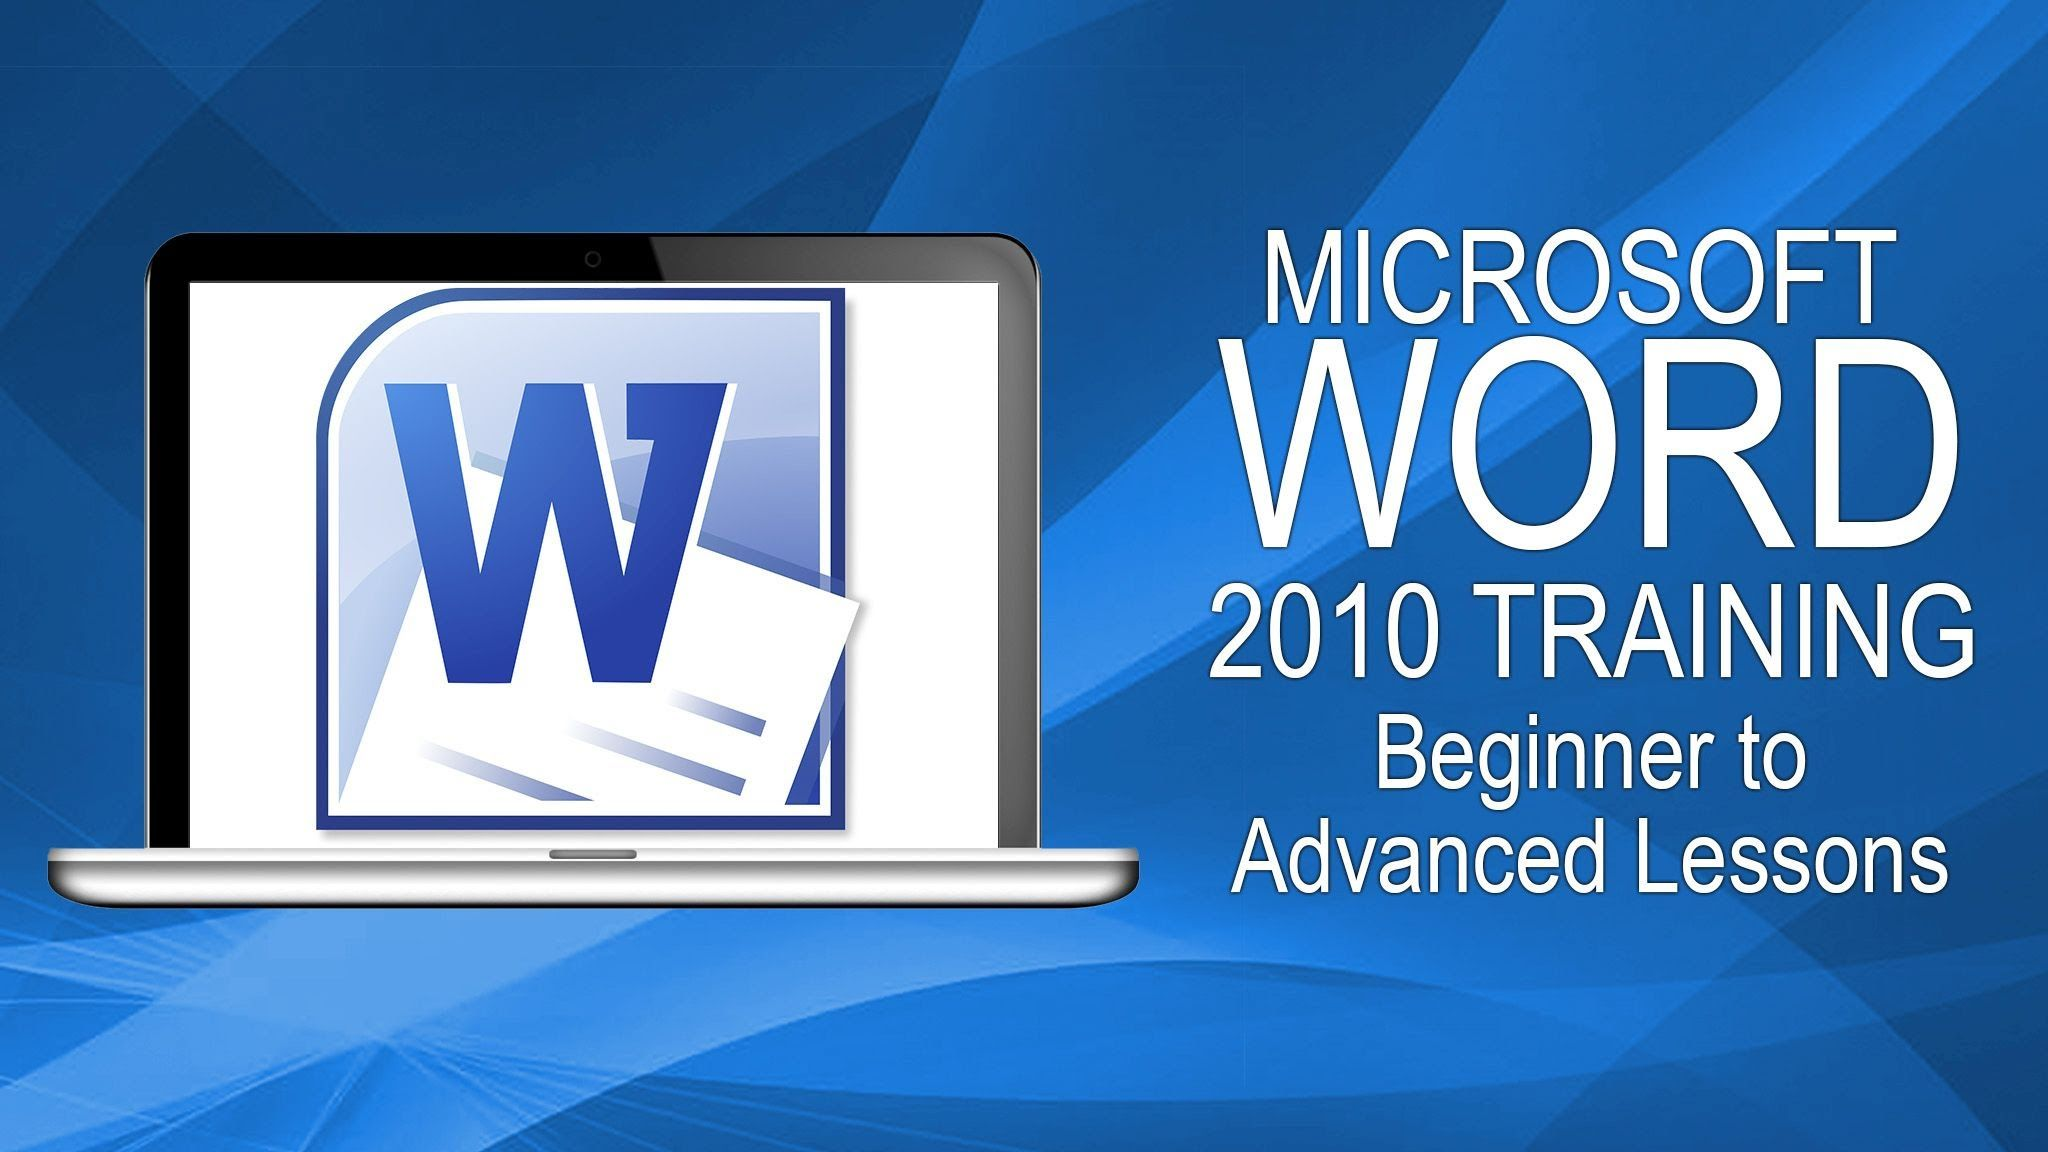 This complete microsoft word 2010 for beginners to advanced this complete microsoft word 2010 for beginners to advanced training course from http xflitez Choice Image